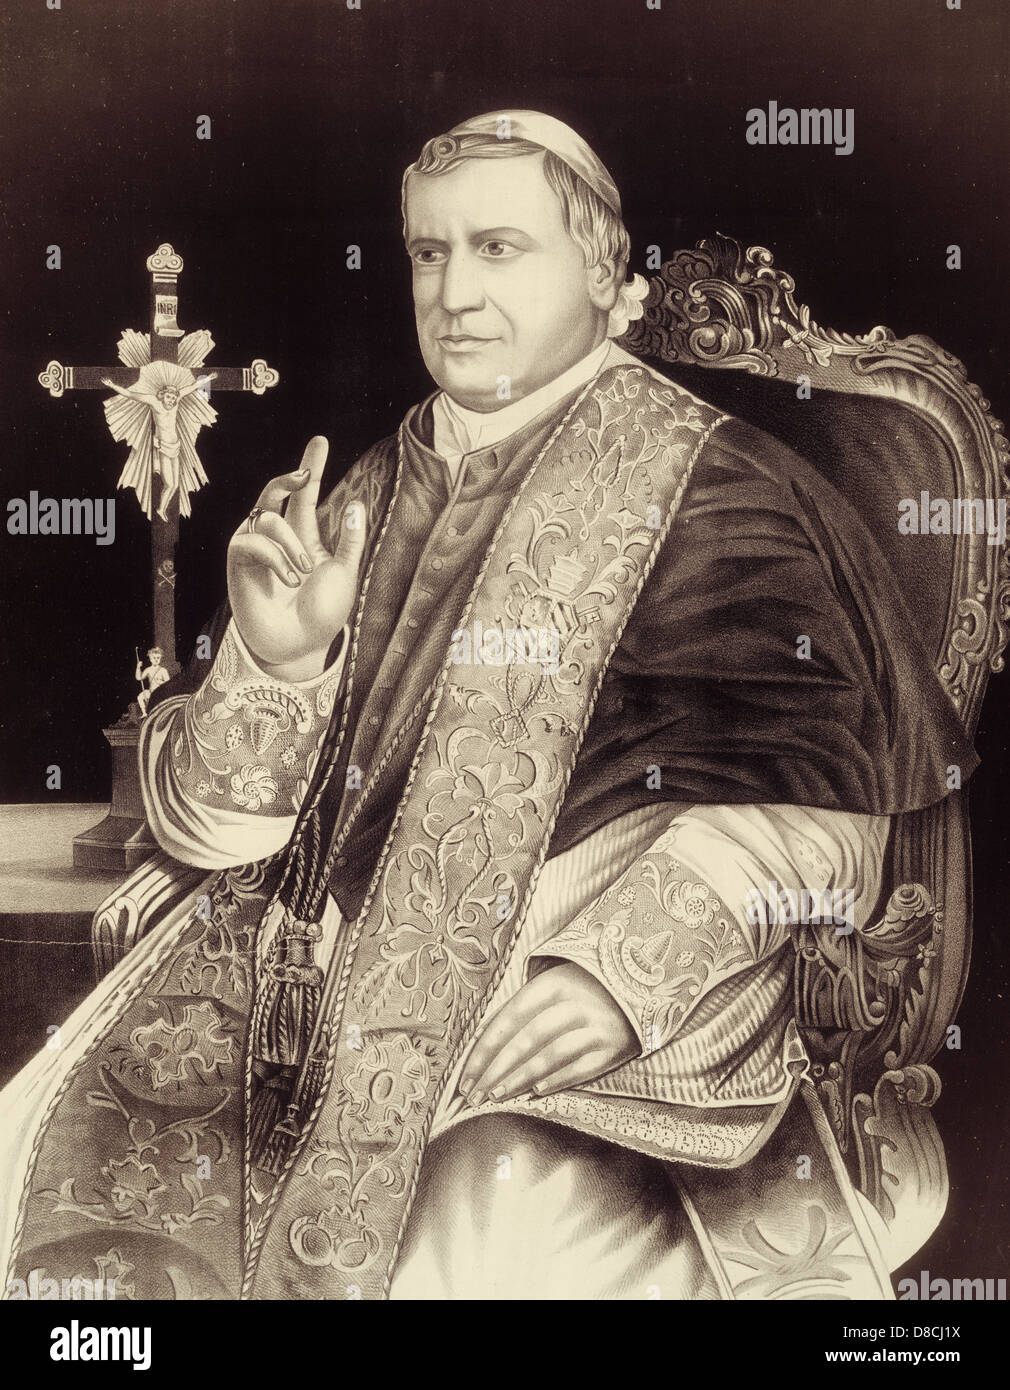 Pope Pius IX - Longest reigning Pope in the Catholic Church, serving from 1846 to 1878 - Stock Image